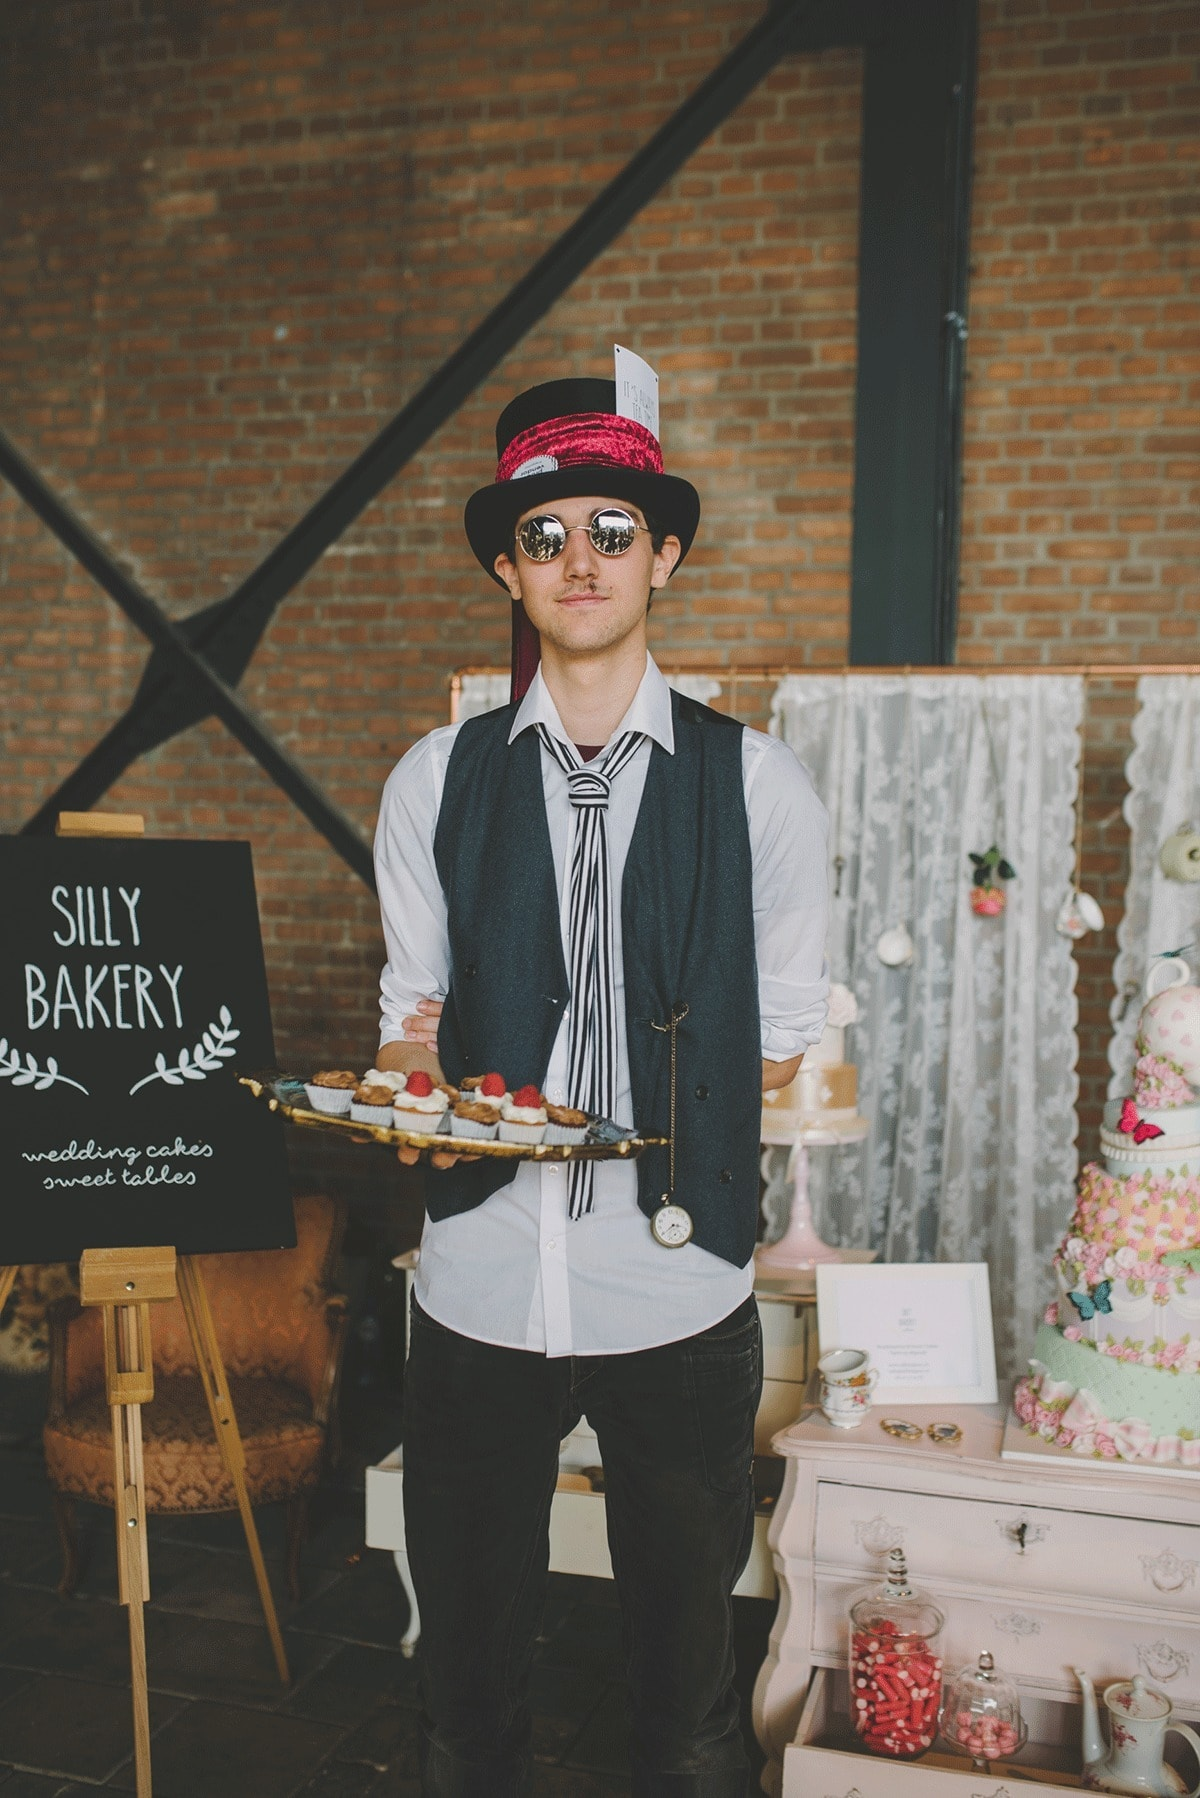 silly-bakery-bruidstaart-en-sweet-table-bij-engaged-47